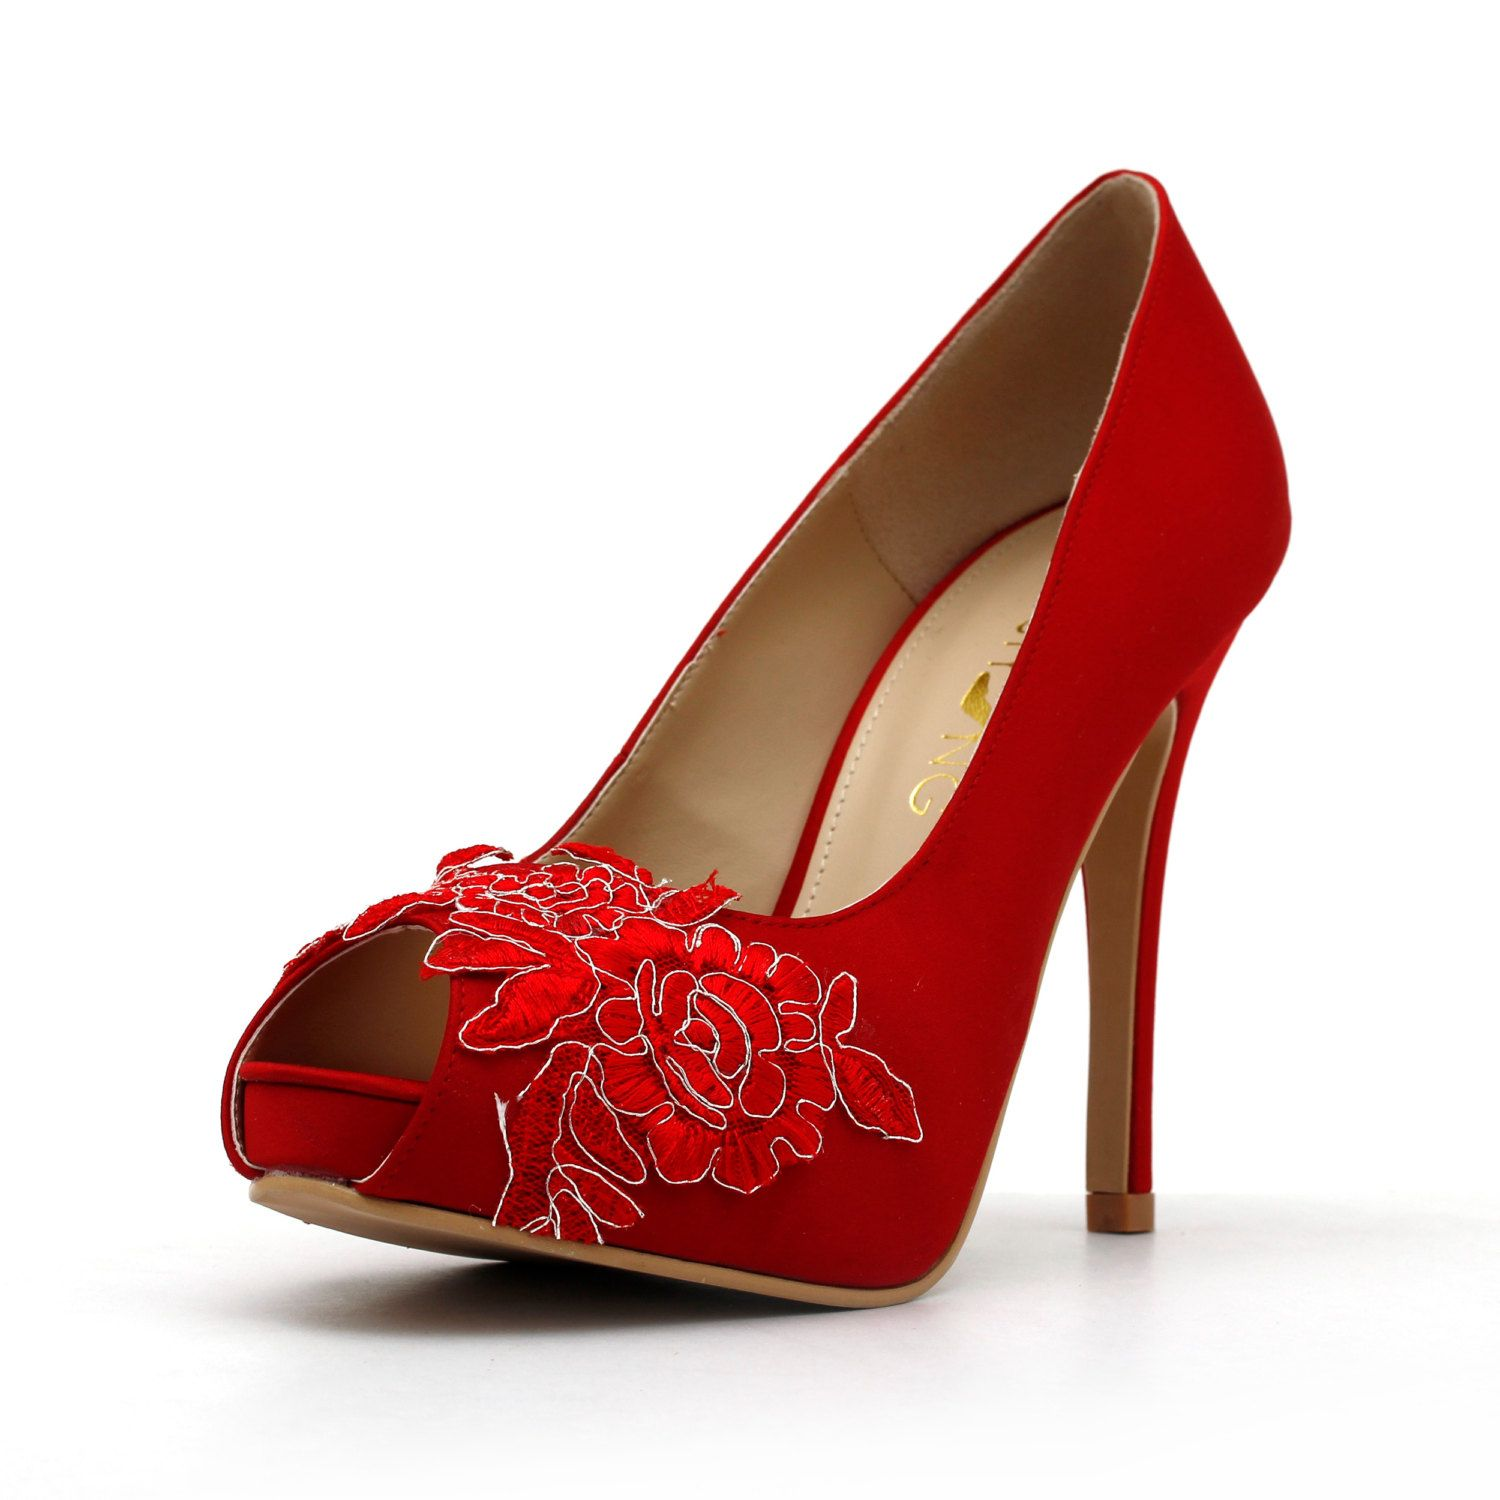 28 Most Por Wedding Shoes For Brides 2017 Red